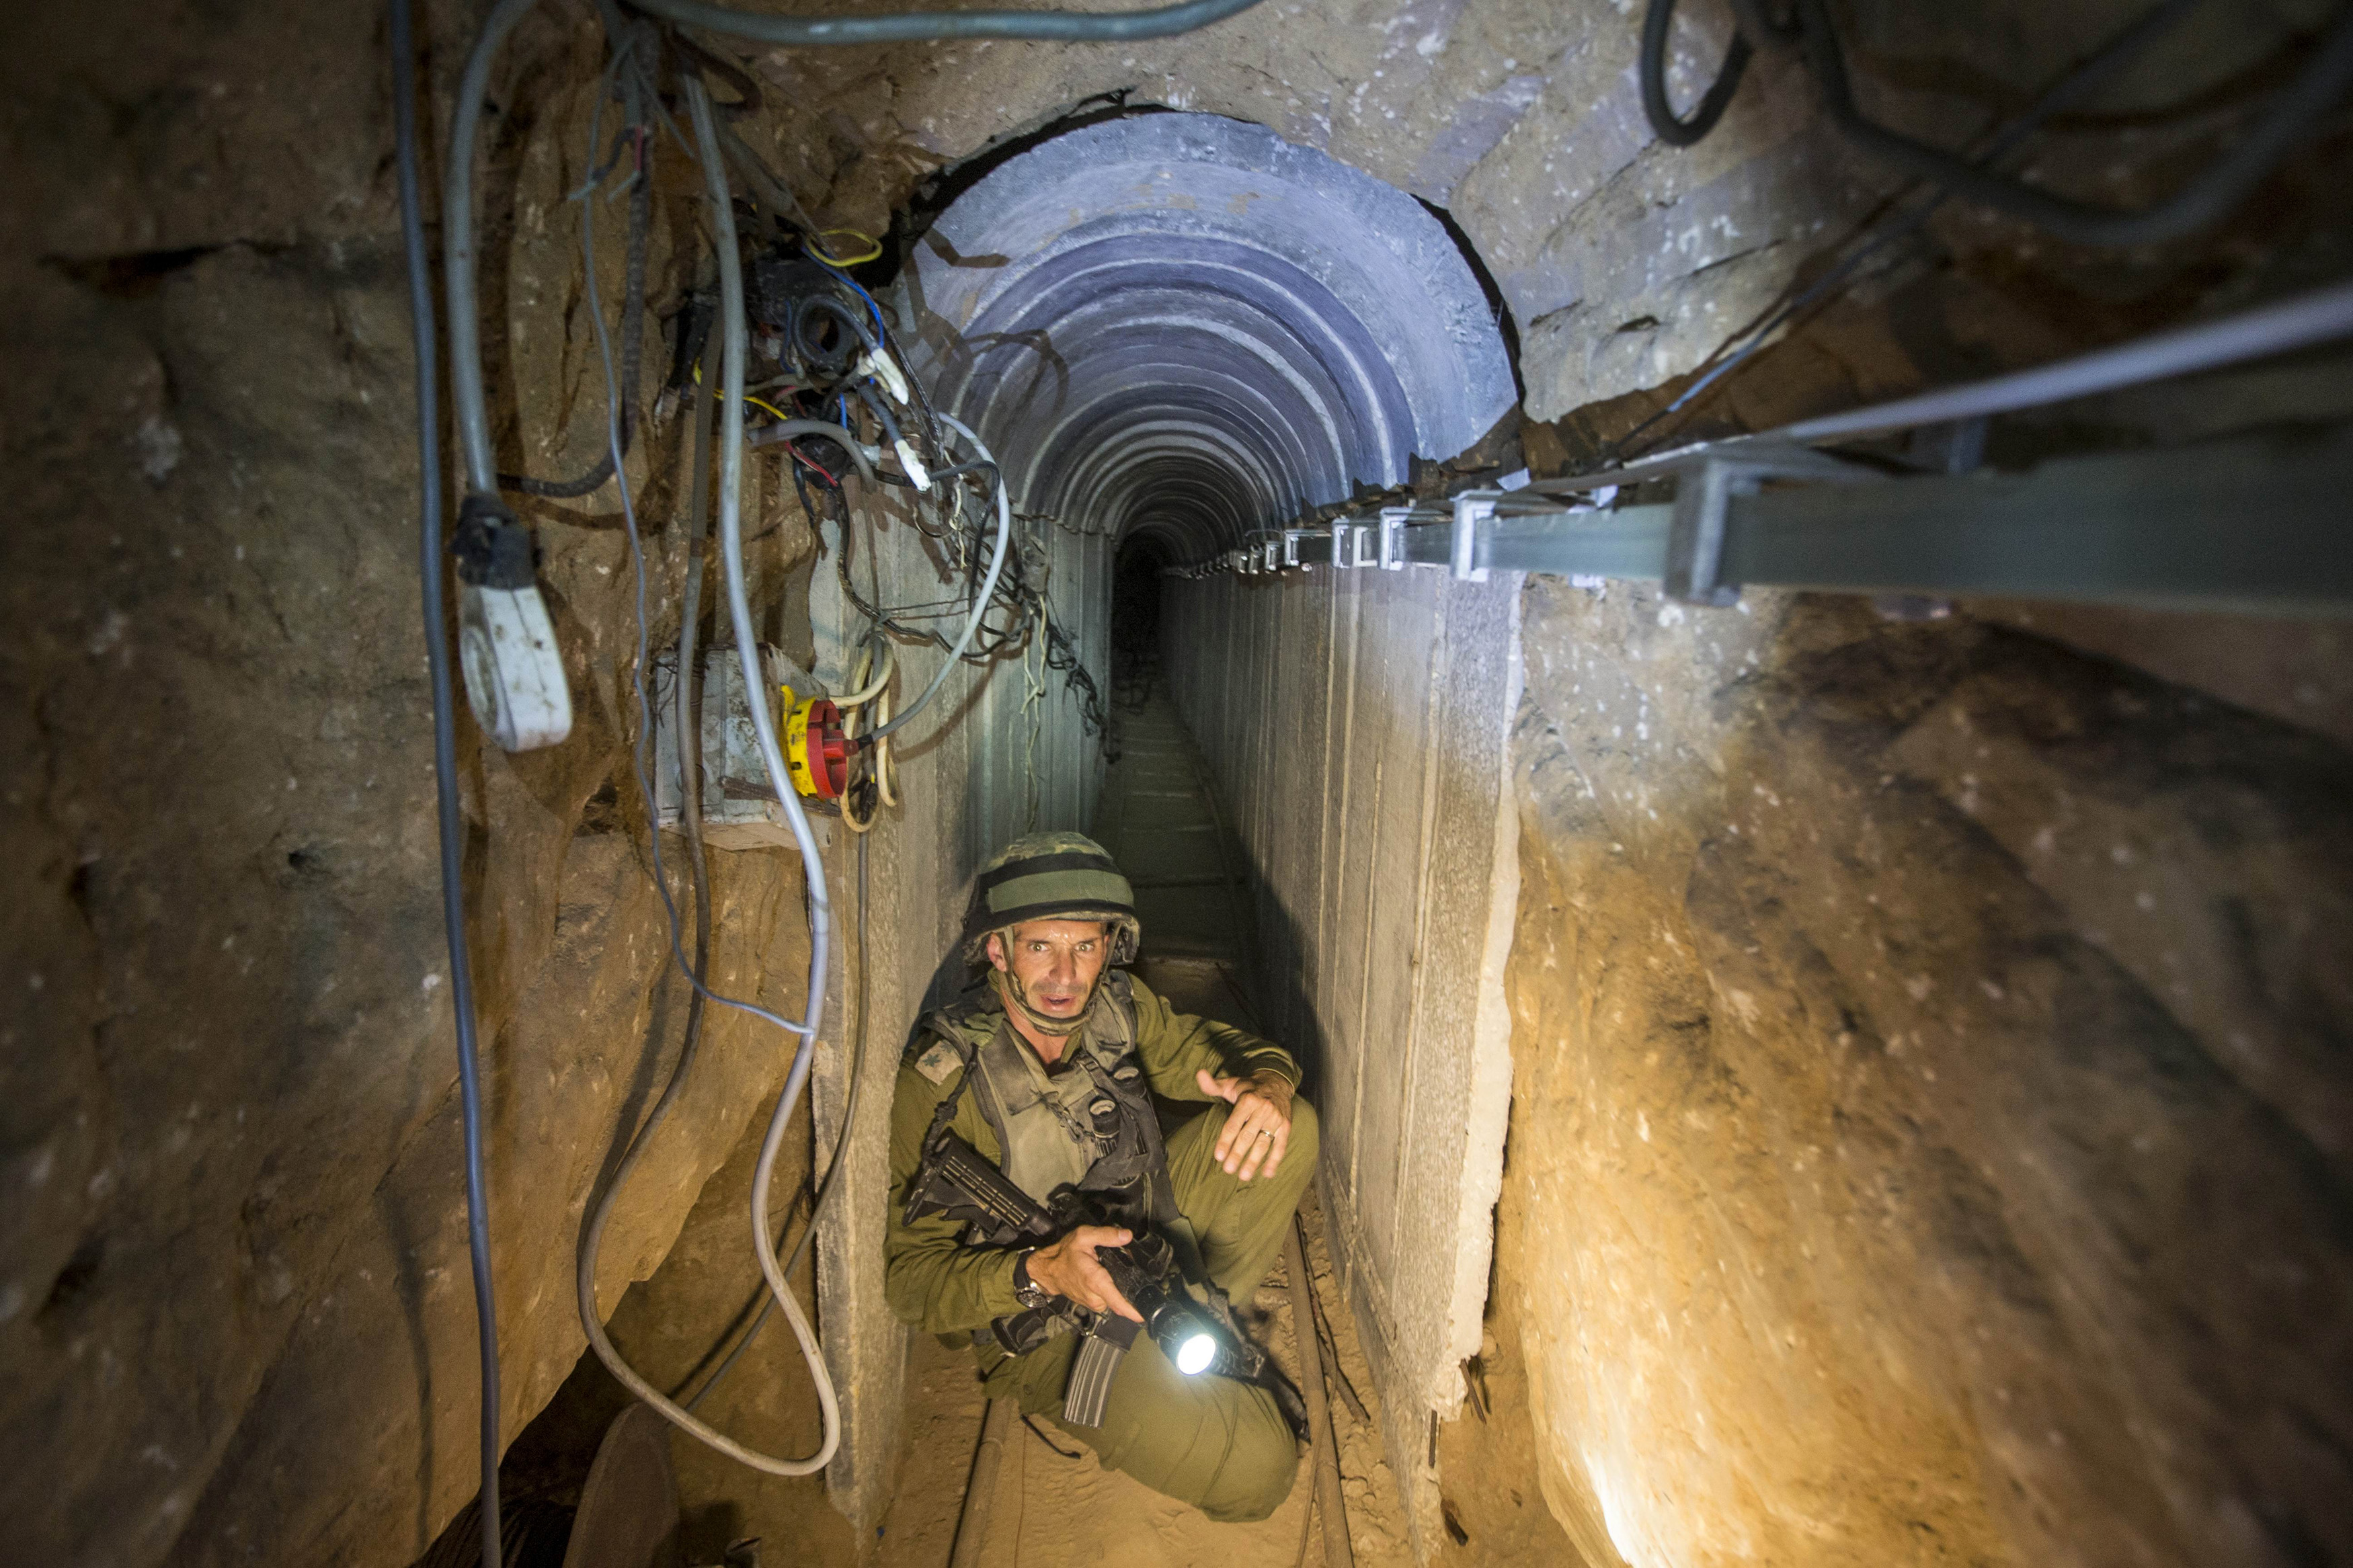 An Israeli army officer gives explanations to journalists during an army organised tour in a tunnel said to be used by Palestinian militants for cross-border attacks, July 25, 2014. U.S. Secretary of State John Kerry pressed regional leaders to nail down a Gaza ceasefire on Friday as the civilian death toll soared, and further violence flared between Israelis and Palestinians in the occupied West Bank and Jerusalem. REUTERS/Jack Guez/Pool (CIVIL UNREST MILITARY POLITICS TPX IMAGES OF THE DAY CONFLICT) - RTR40580